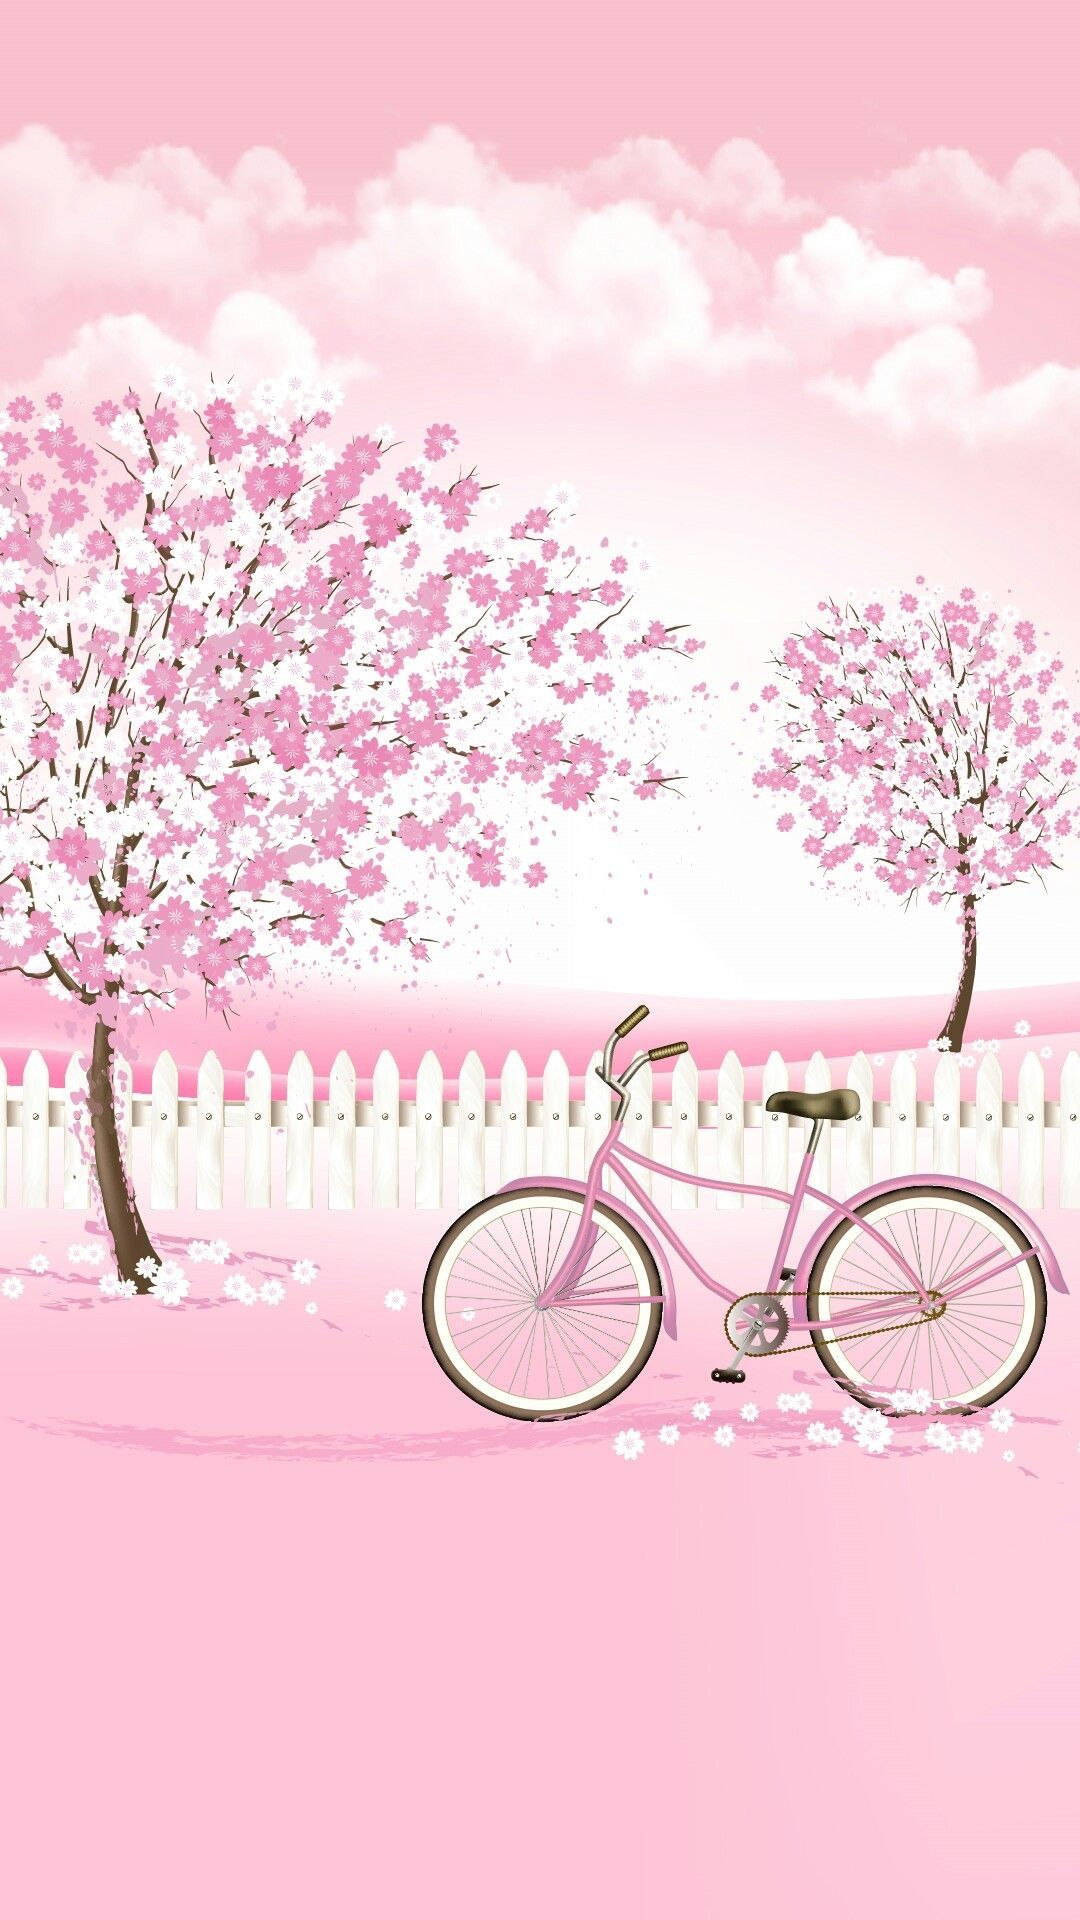 Pin By Zahra Kouhestani On Walpaper Cute Girl Wallpaper Pink And White Background Pink Wallpaper